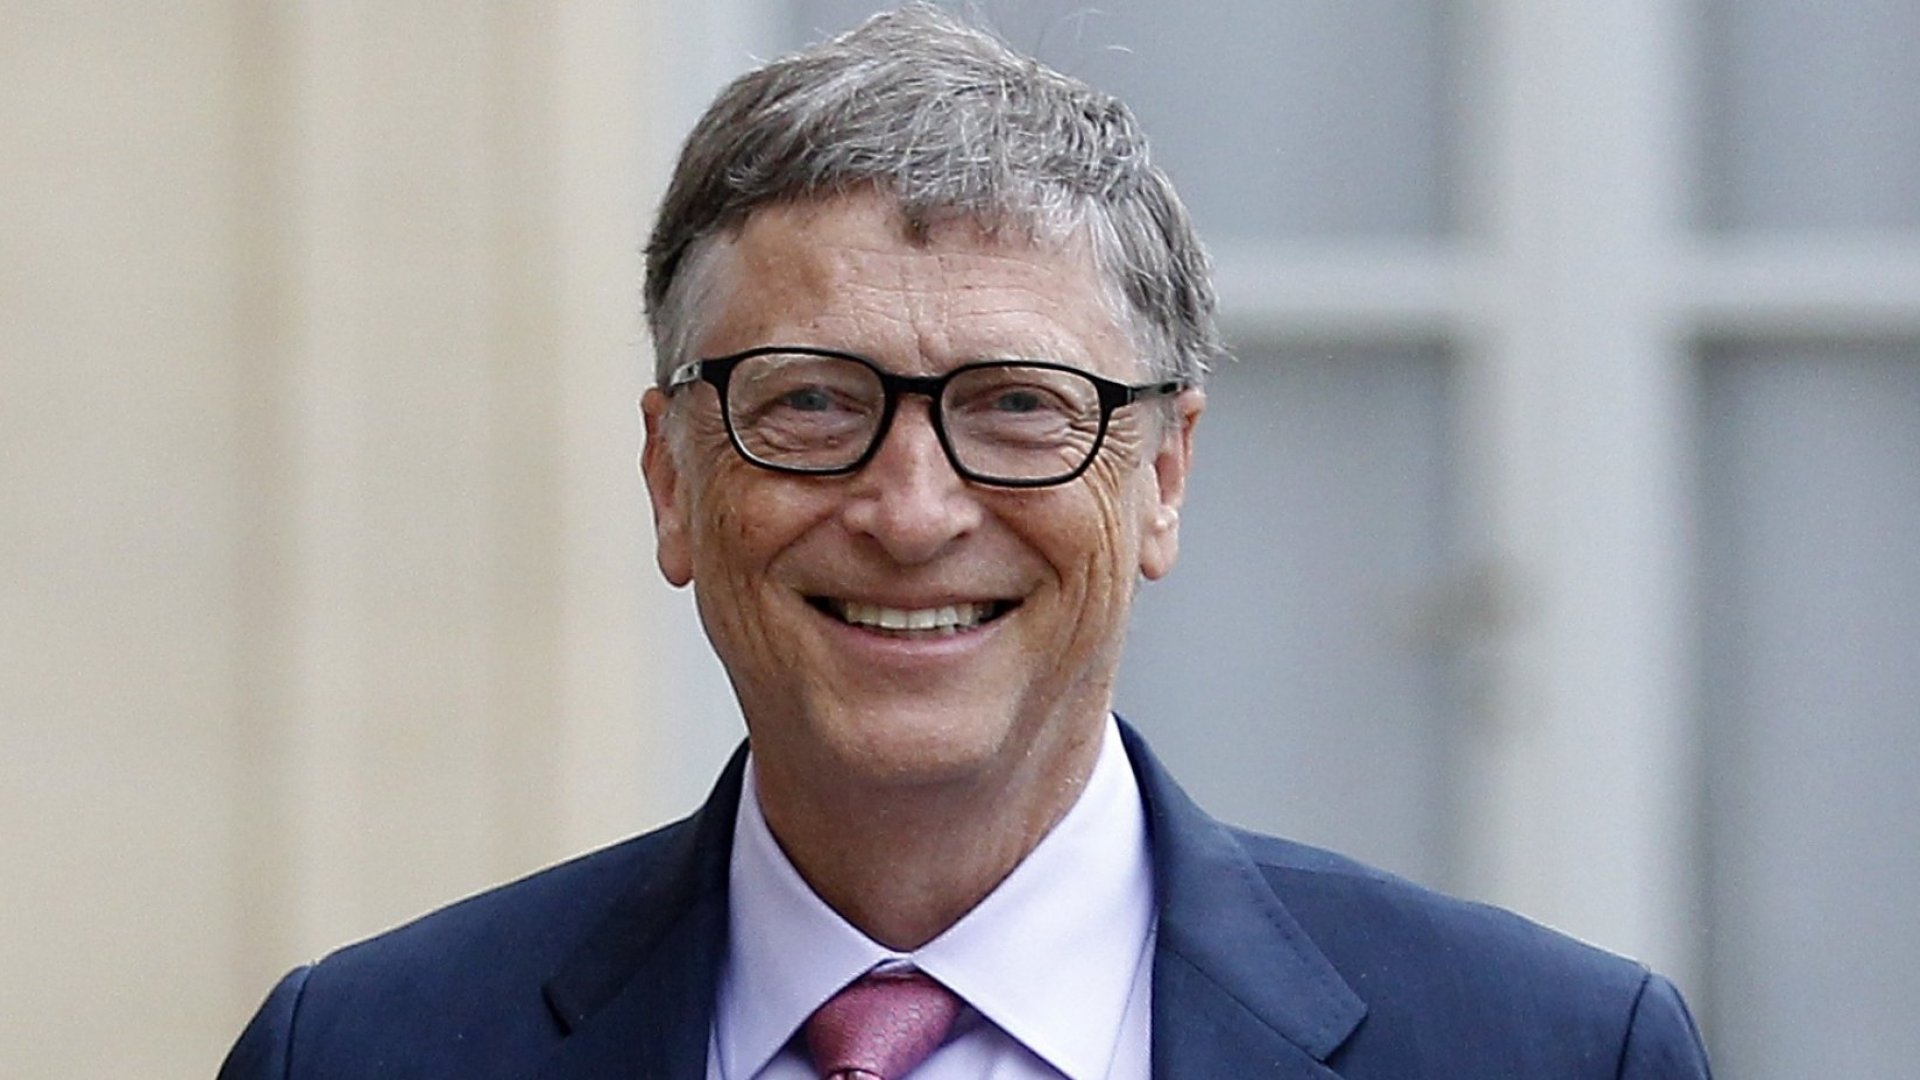 Bill Gates's 1 Simple Habit From the 1980s Will Help You Think and Perform Better Under Pressure